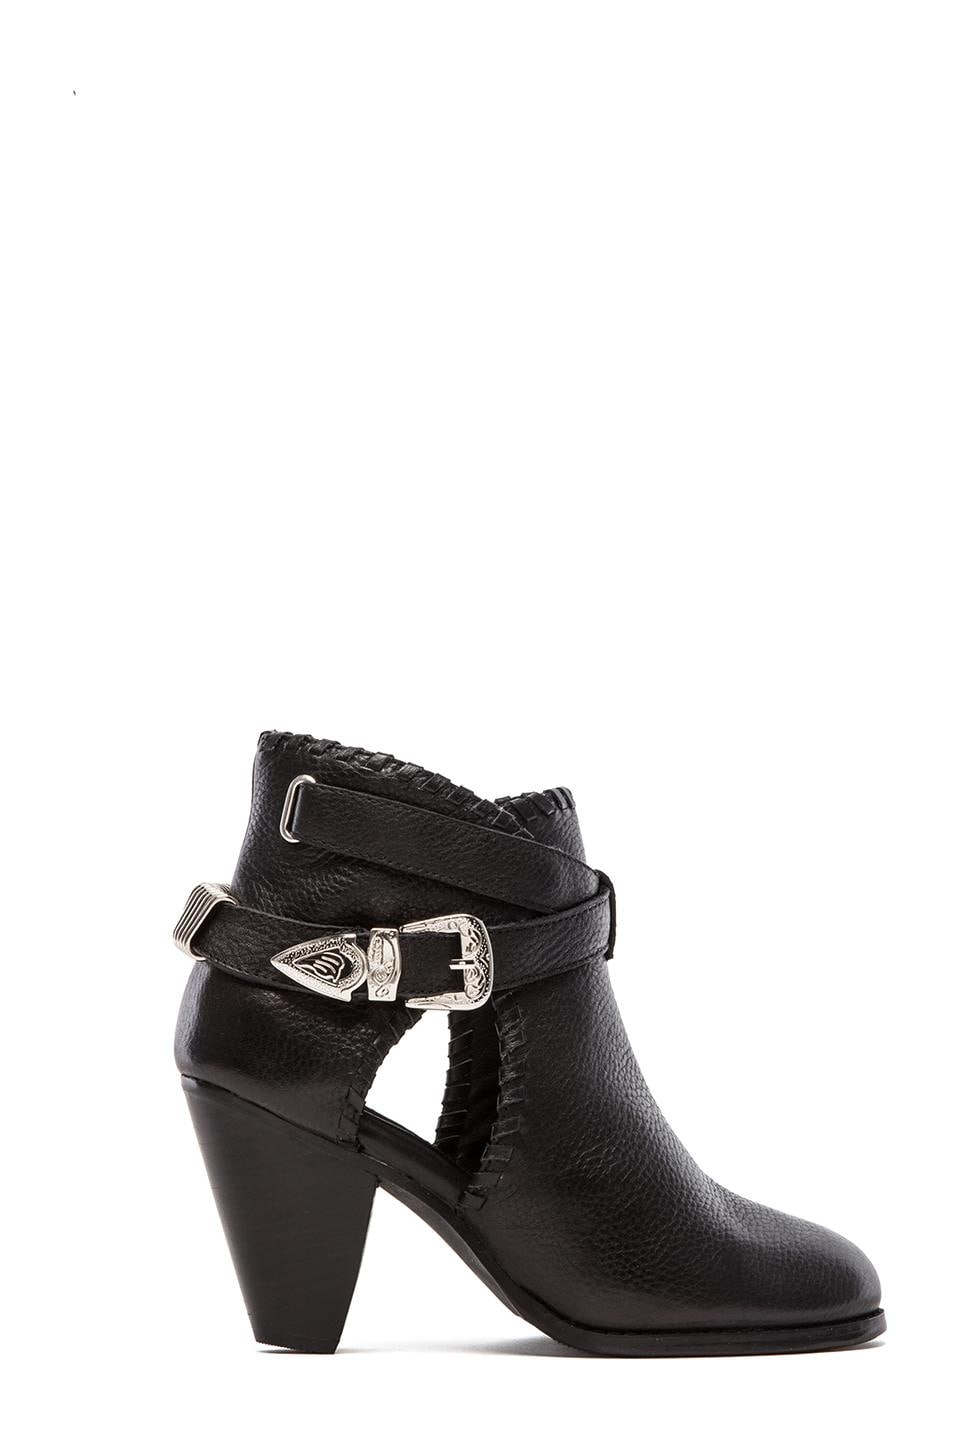 MADISON HARDING Olivia Buckle Boot in Black Faded